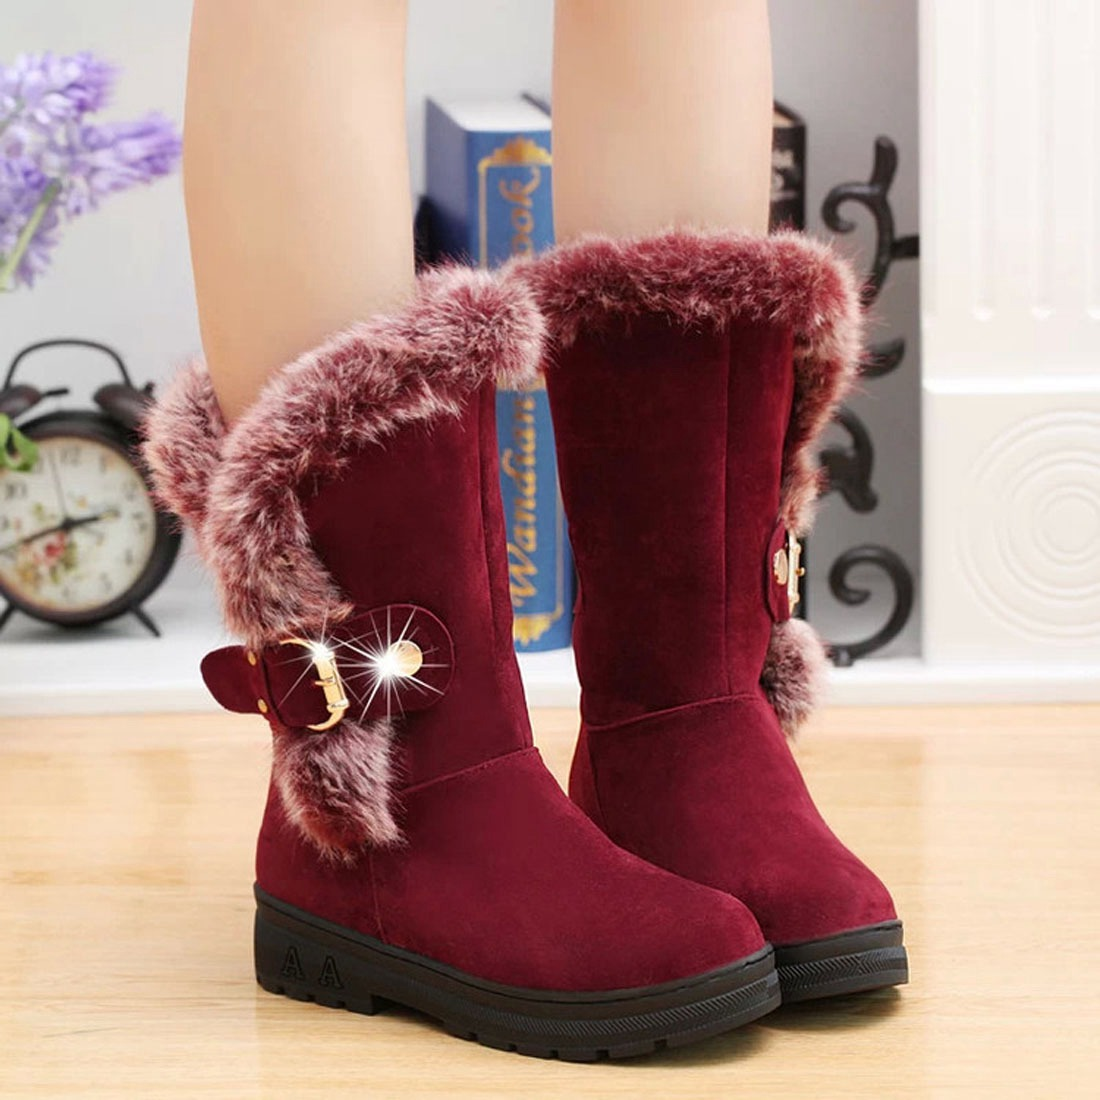 Hot Sale Women's Flat Fashion Suede Thigh High Rubber Winter Snow Boots Thicken Warm Scrub Knee-high Fur Shoes 3 colors giacomo copani service business models in the machine tool industry